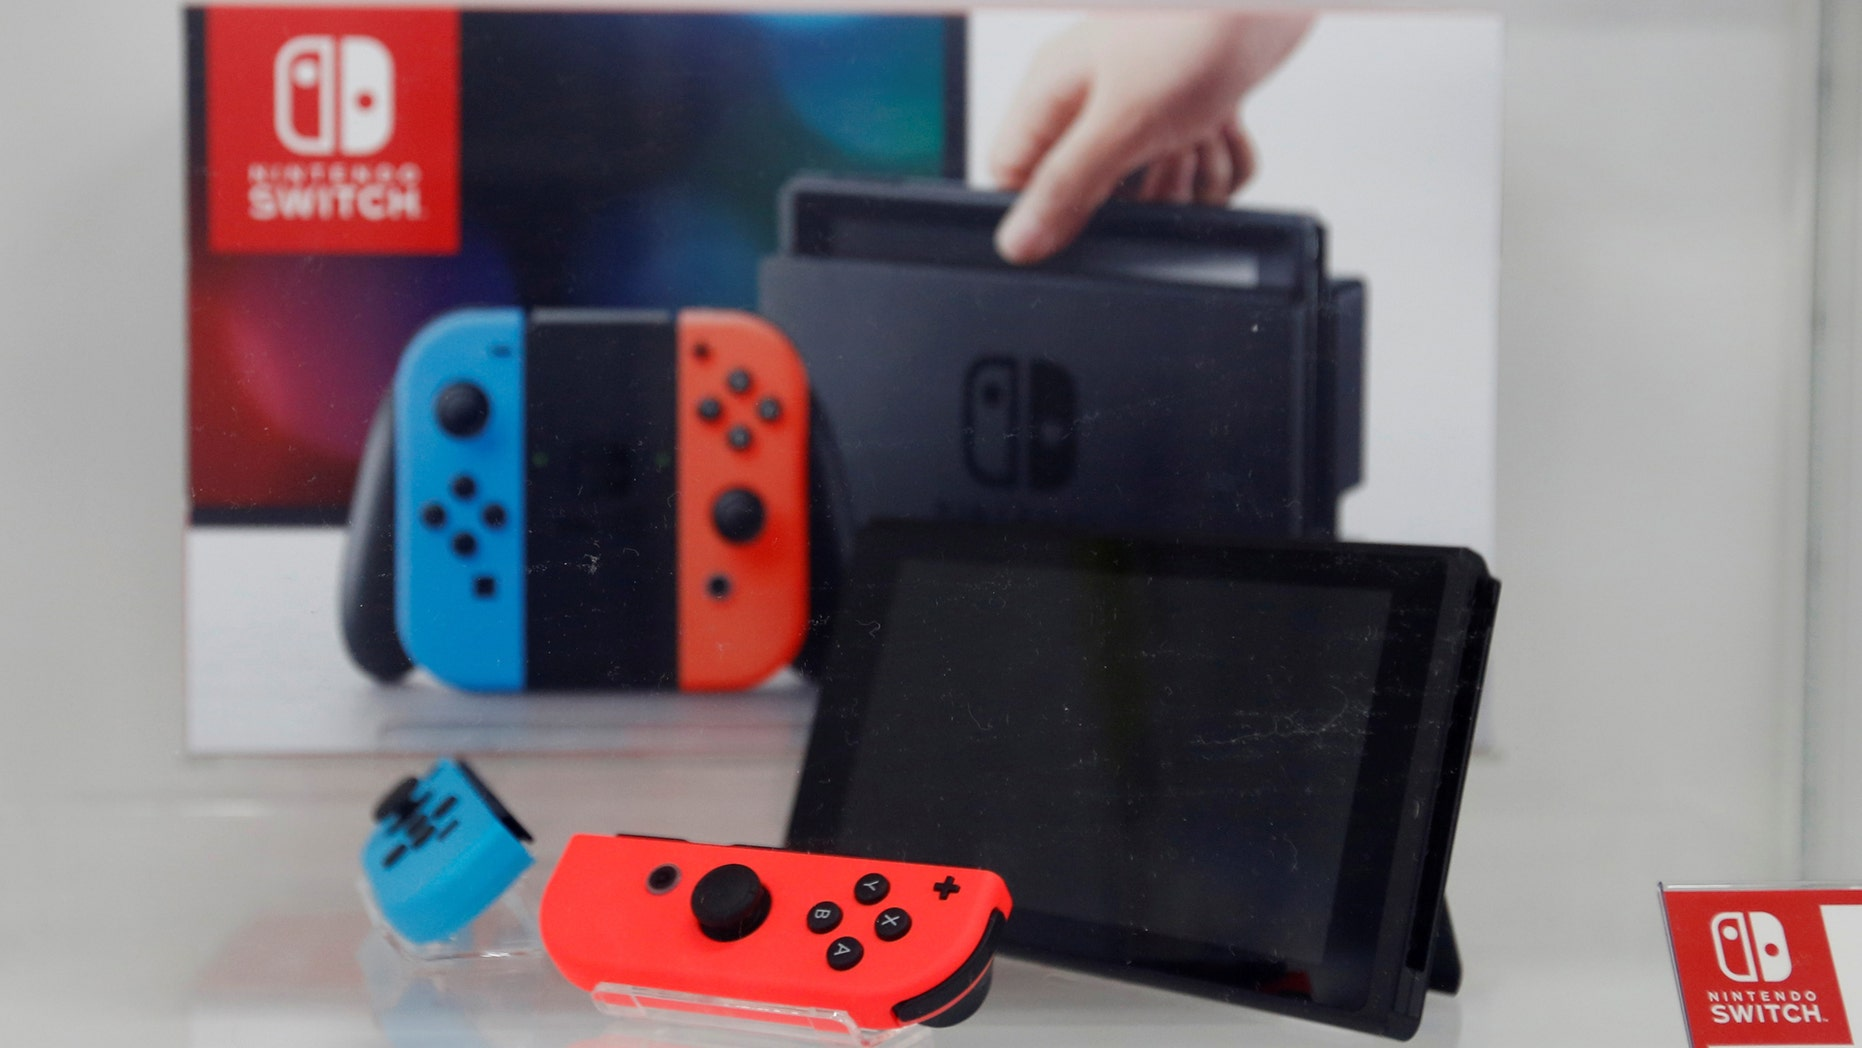 Nintendo can 'perfectly detect' and ban pirate Switch games | Fox News